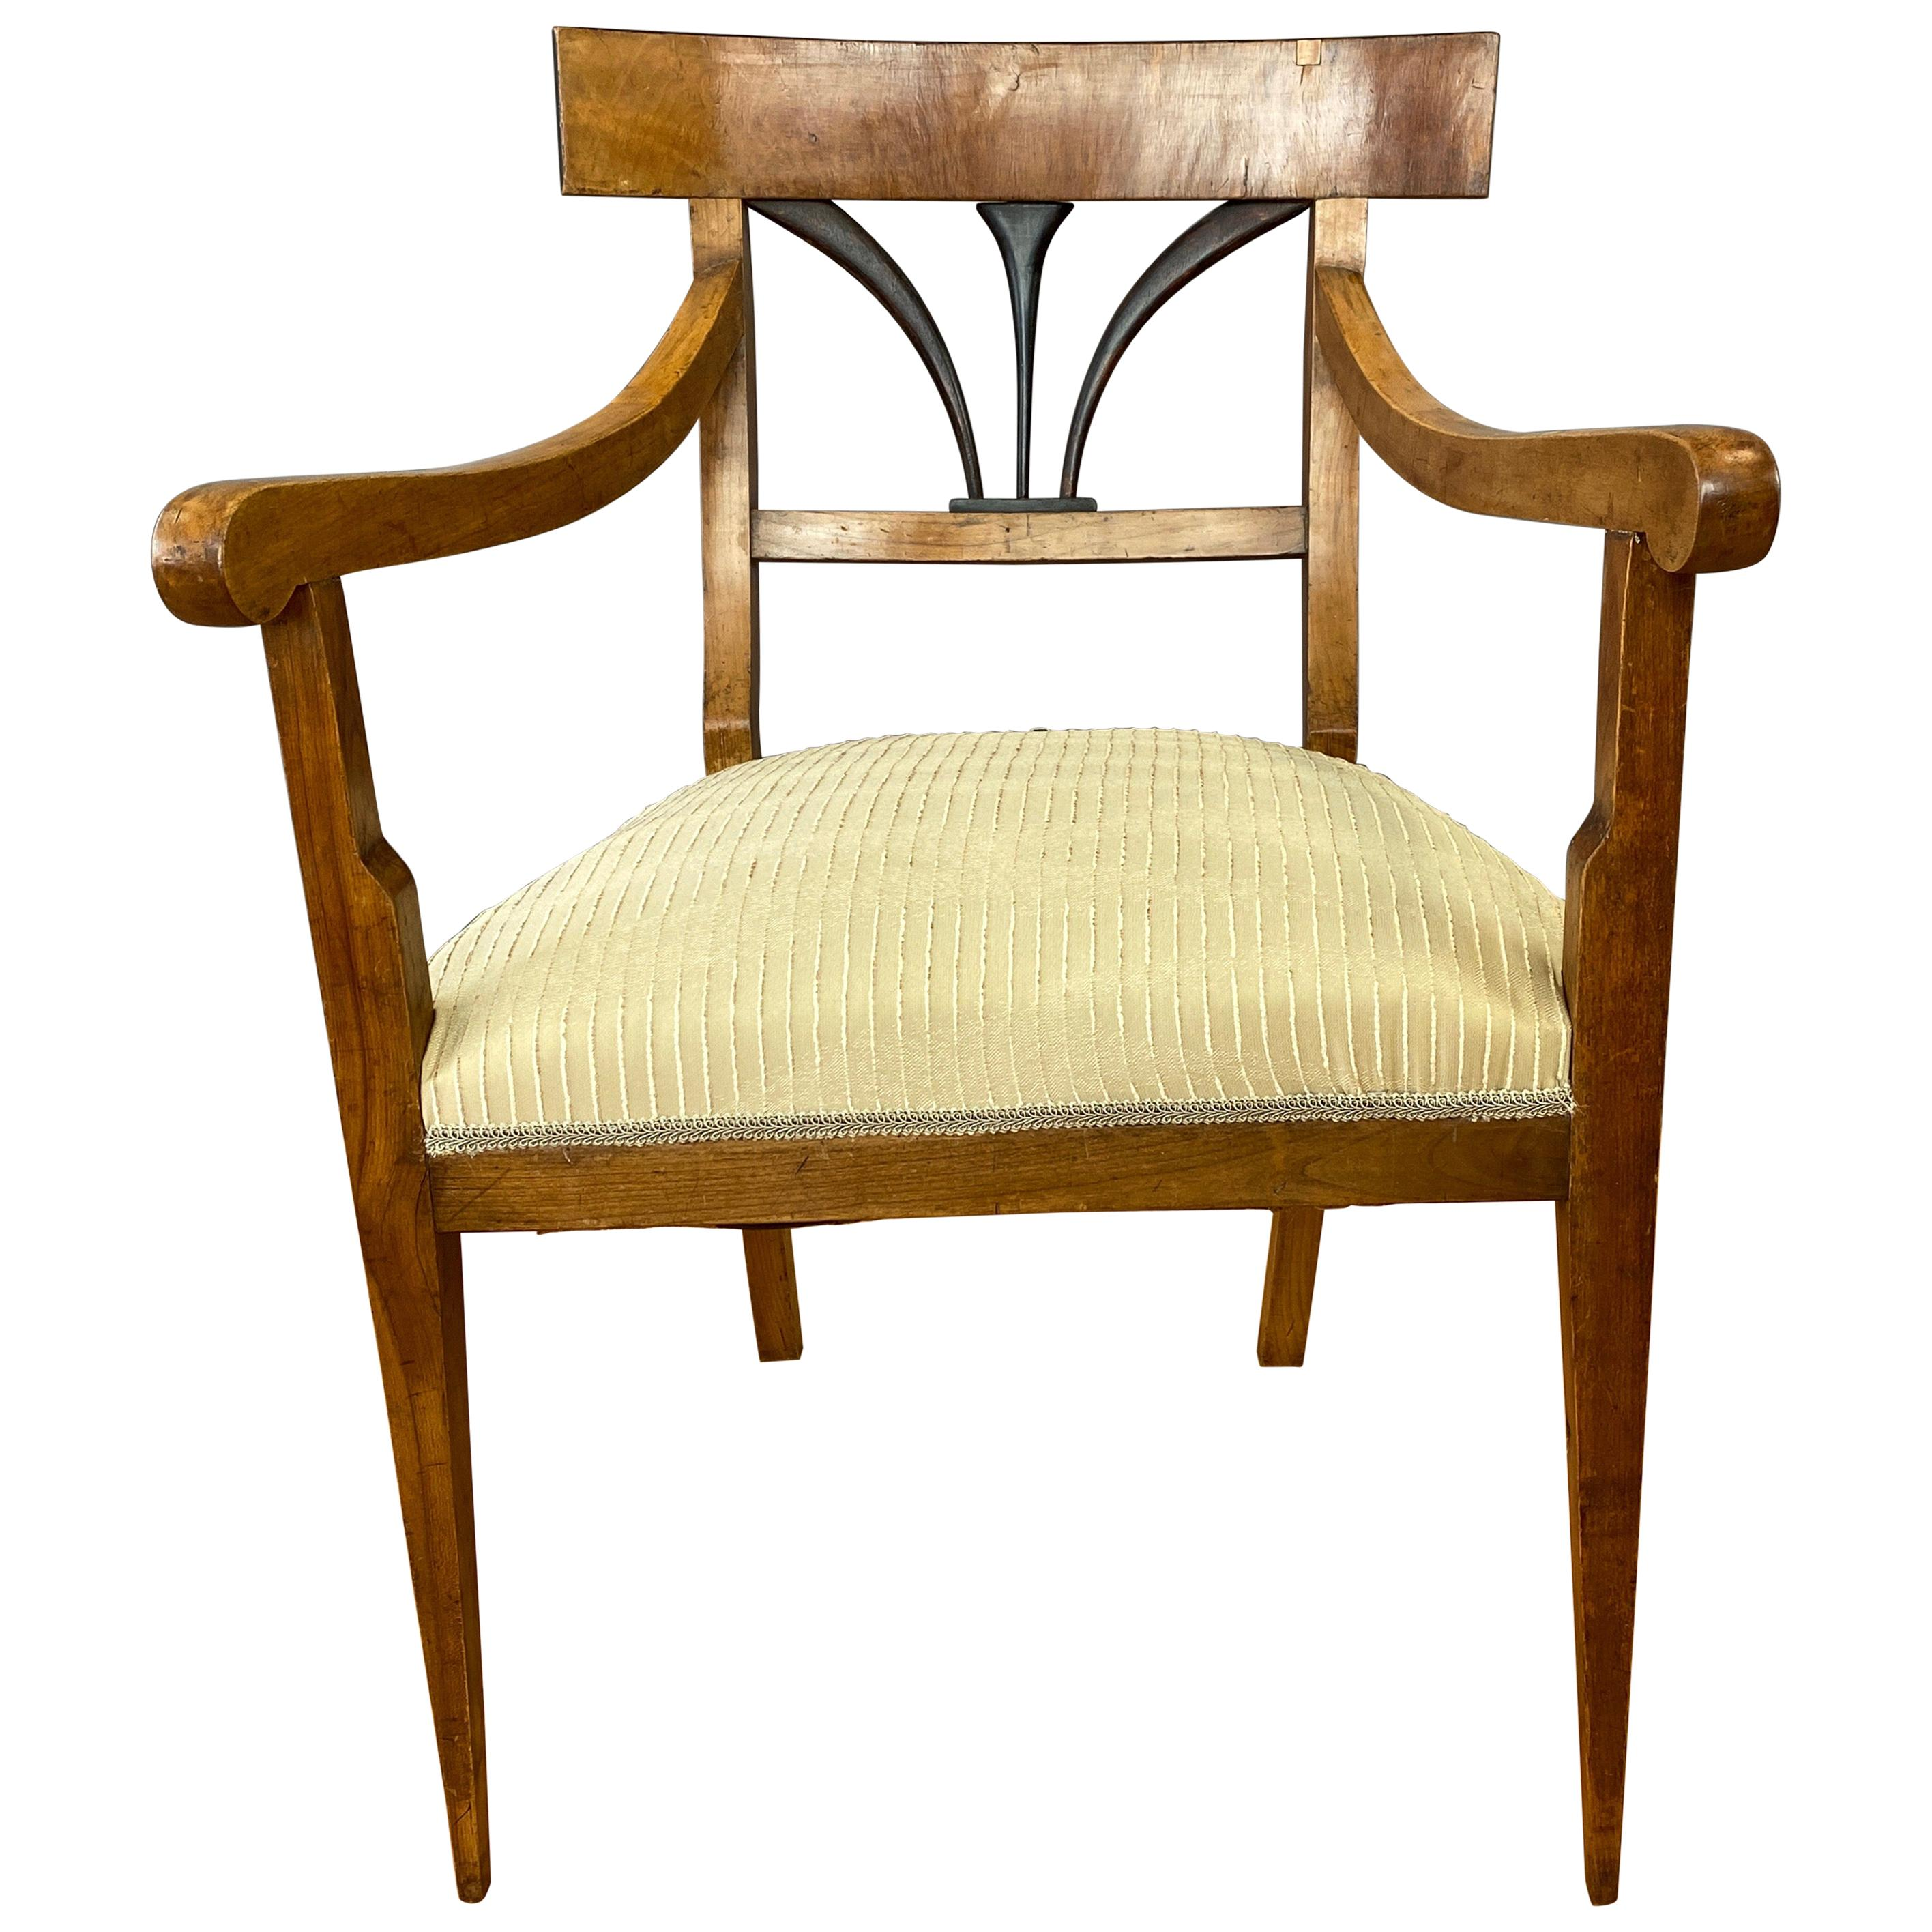 Early Biedermeier Fruitwood and Ash Armchair with Upholstered Seat, c. 1825